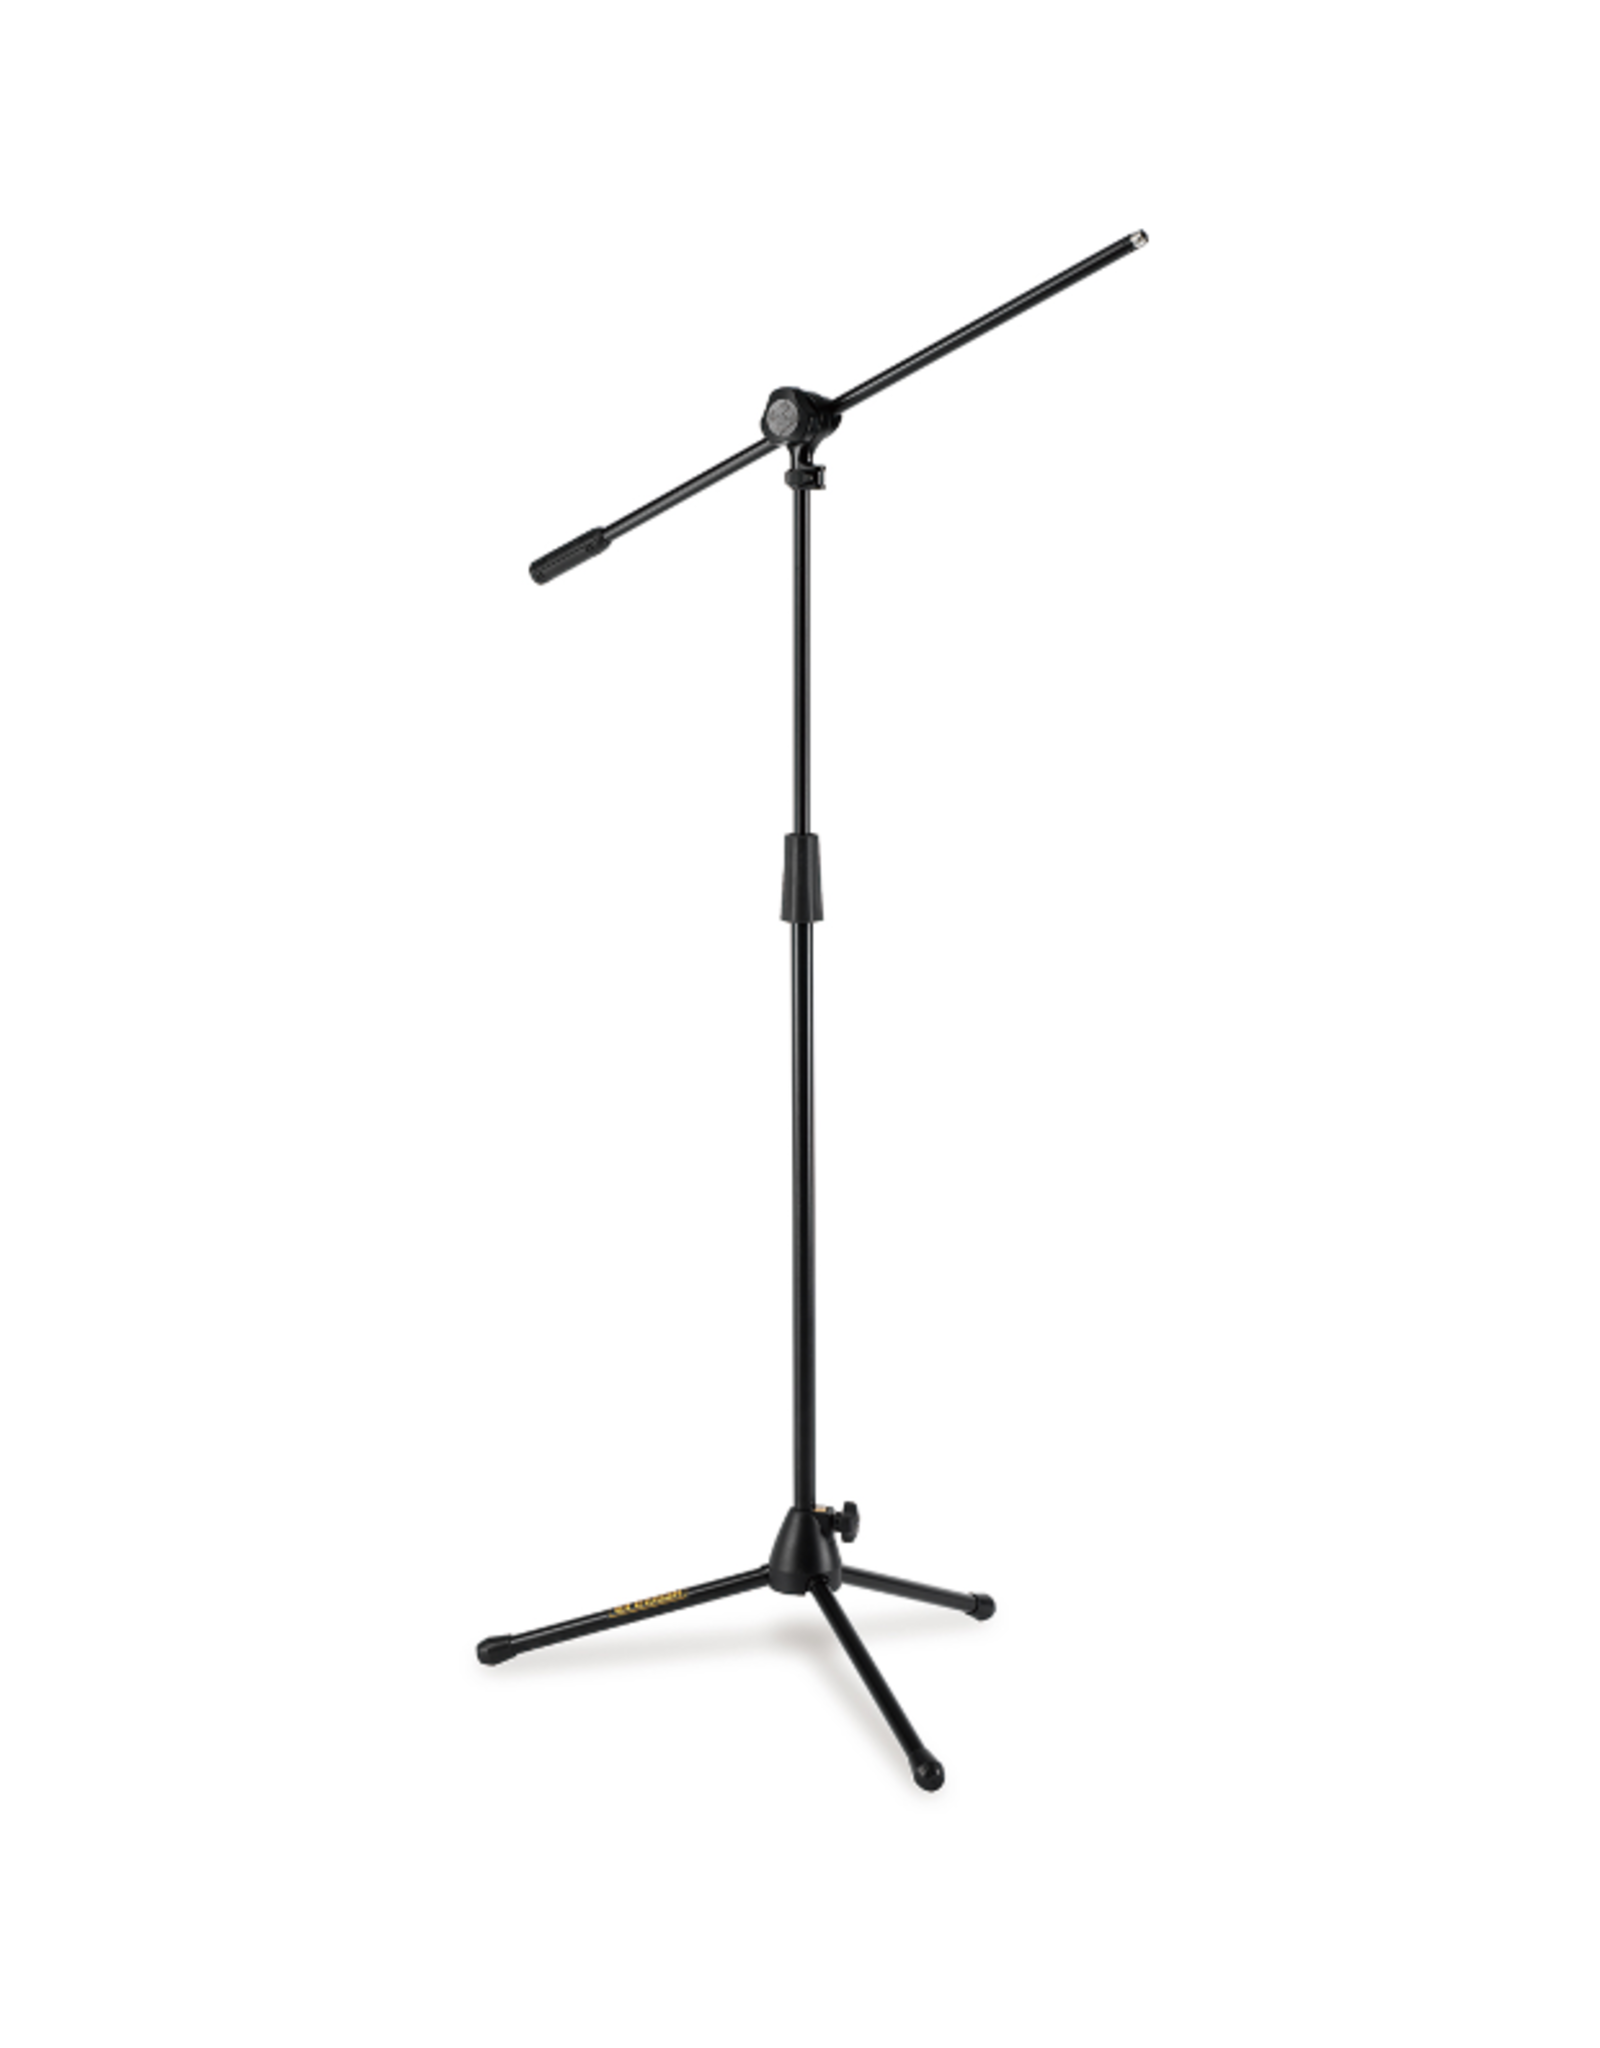 Hercules Hercules Stage Series Quick Turn Microphone Stand with 2-in-1 Boom